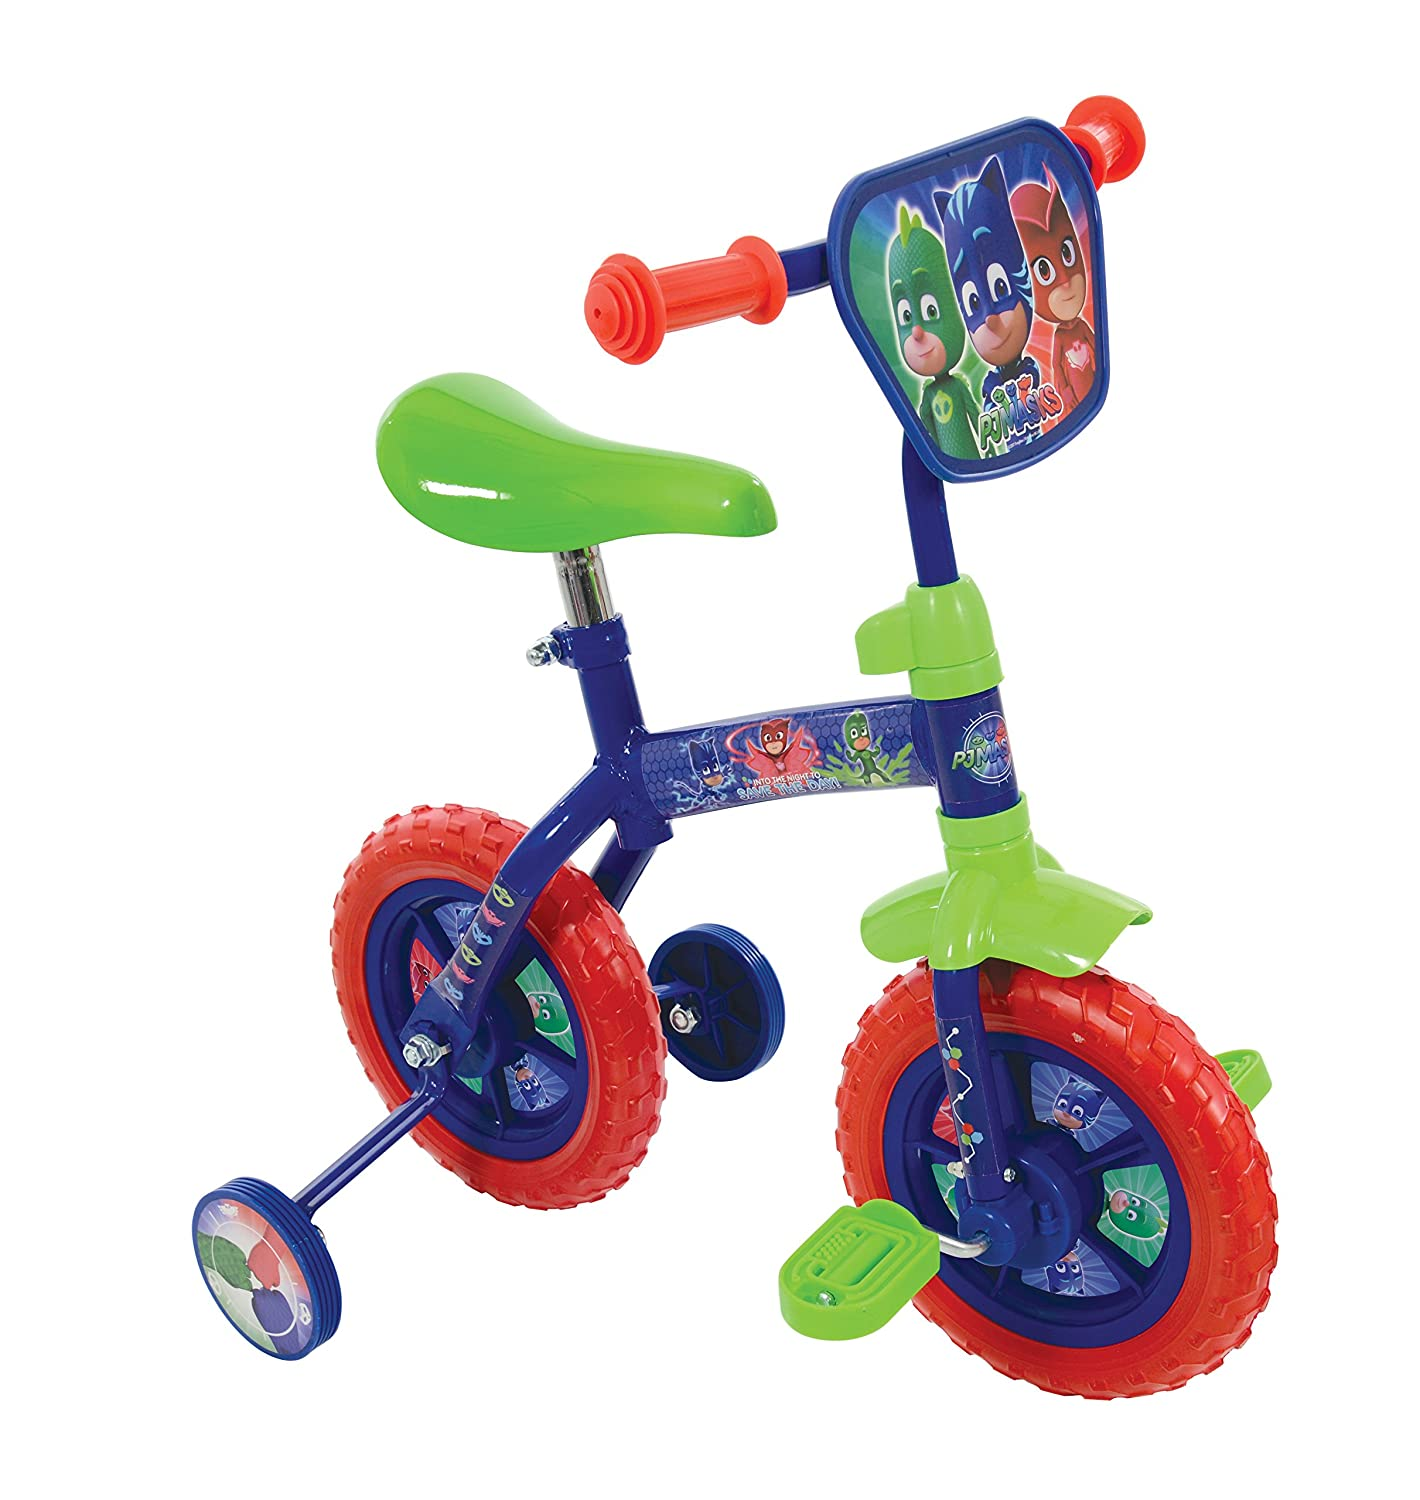 PJ MASKS 2-in-1 Training Bike 10-Inch: Amazon.es: Juguetes y ...